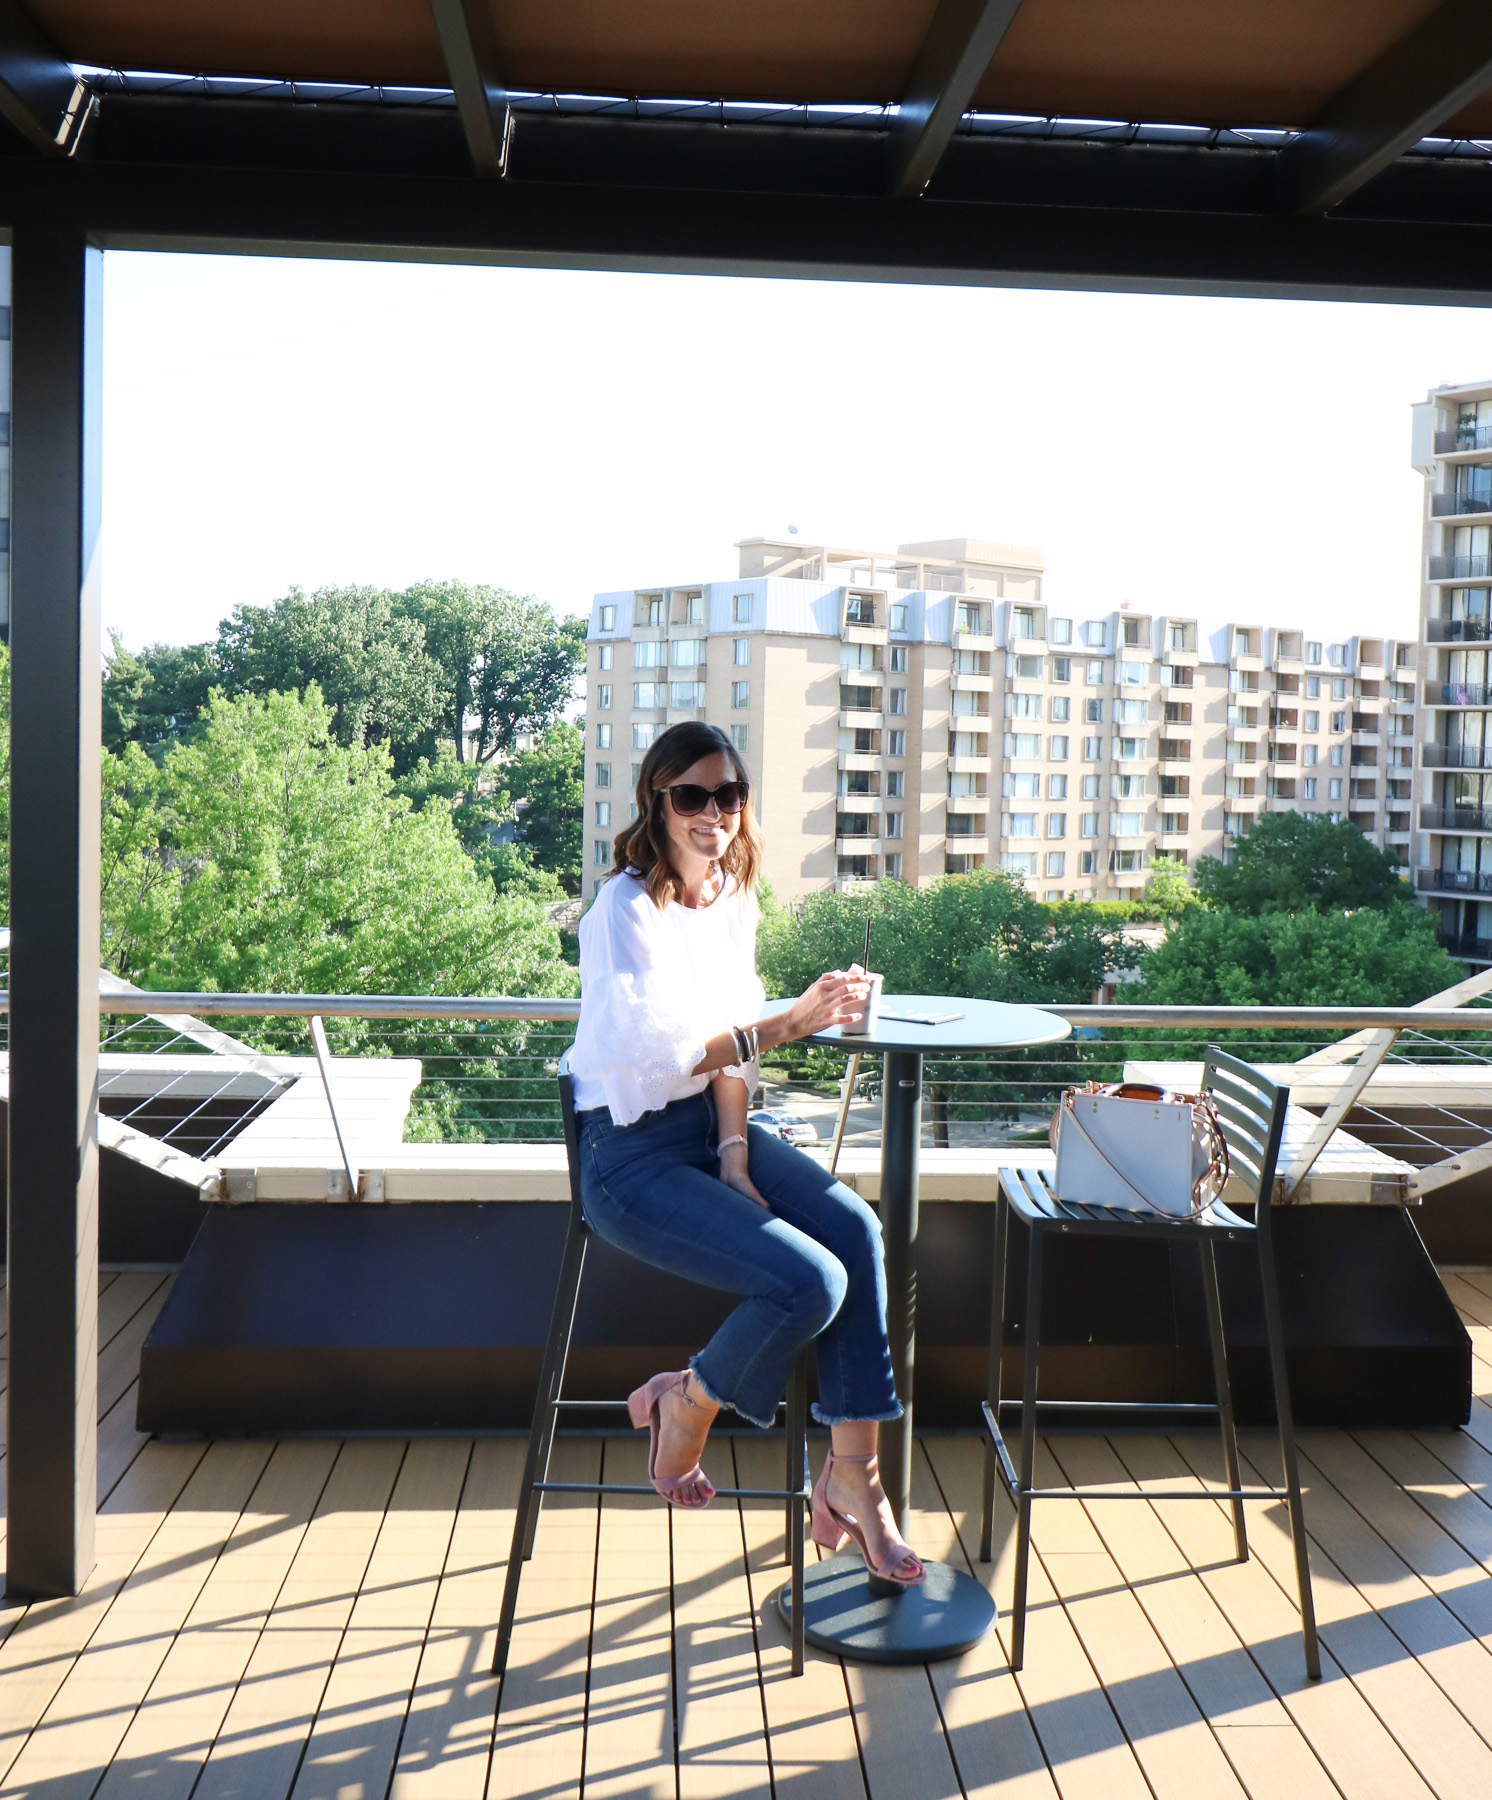 Washington, DC Hotel Hive | Cobalt Chronicles | Washington, DC | Travel Blogger